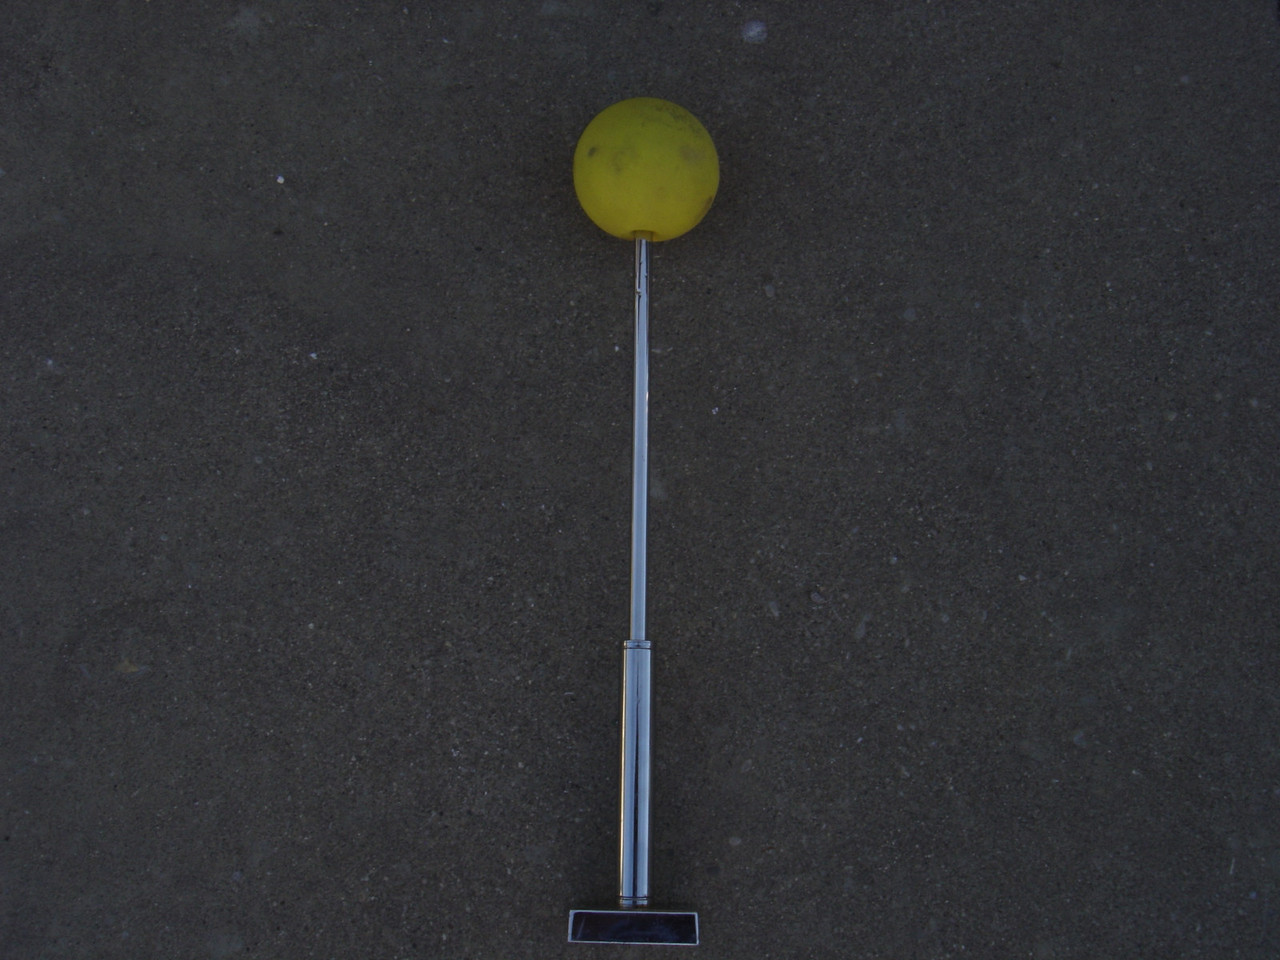 "Valley magnetic hitch aligner.  Telescoping poles  with magnets, and each has a bright yellow ball on the end. It extends up to 42"" and collapses down to 13-1/2"" for storage."